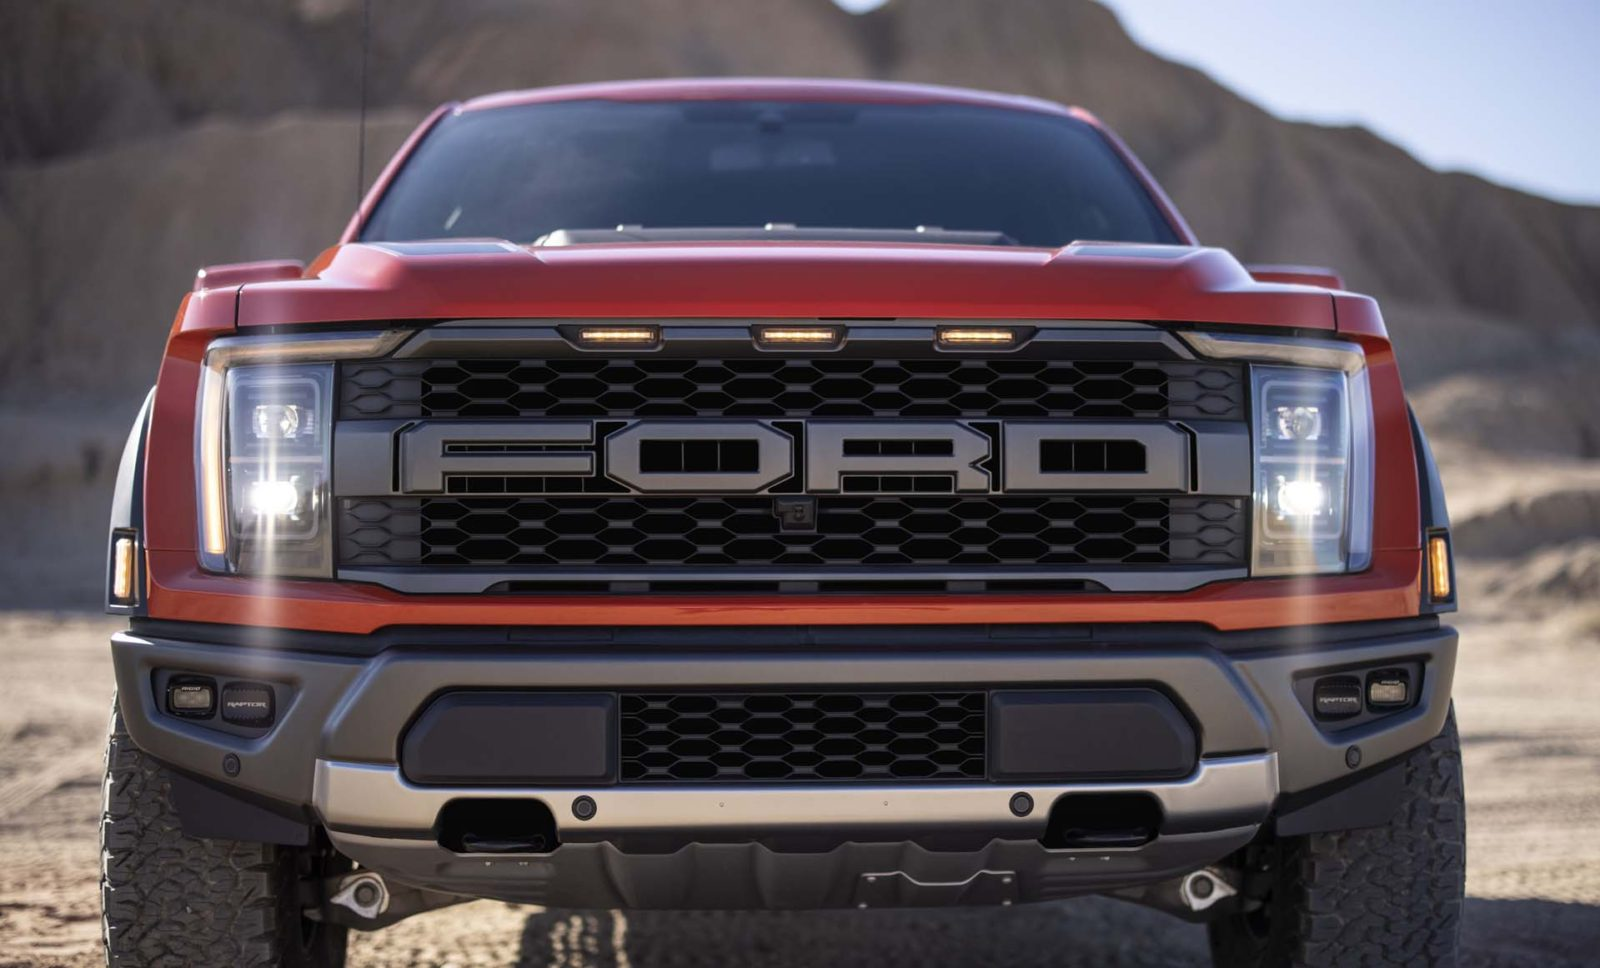 2021-ford-f-150-raptor,-genesis-gv60,-mercedes-benz-amg-one:-today's-car-news